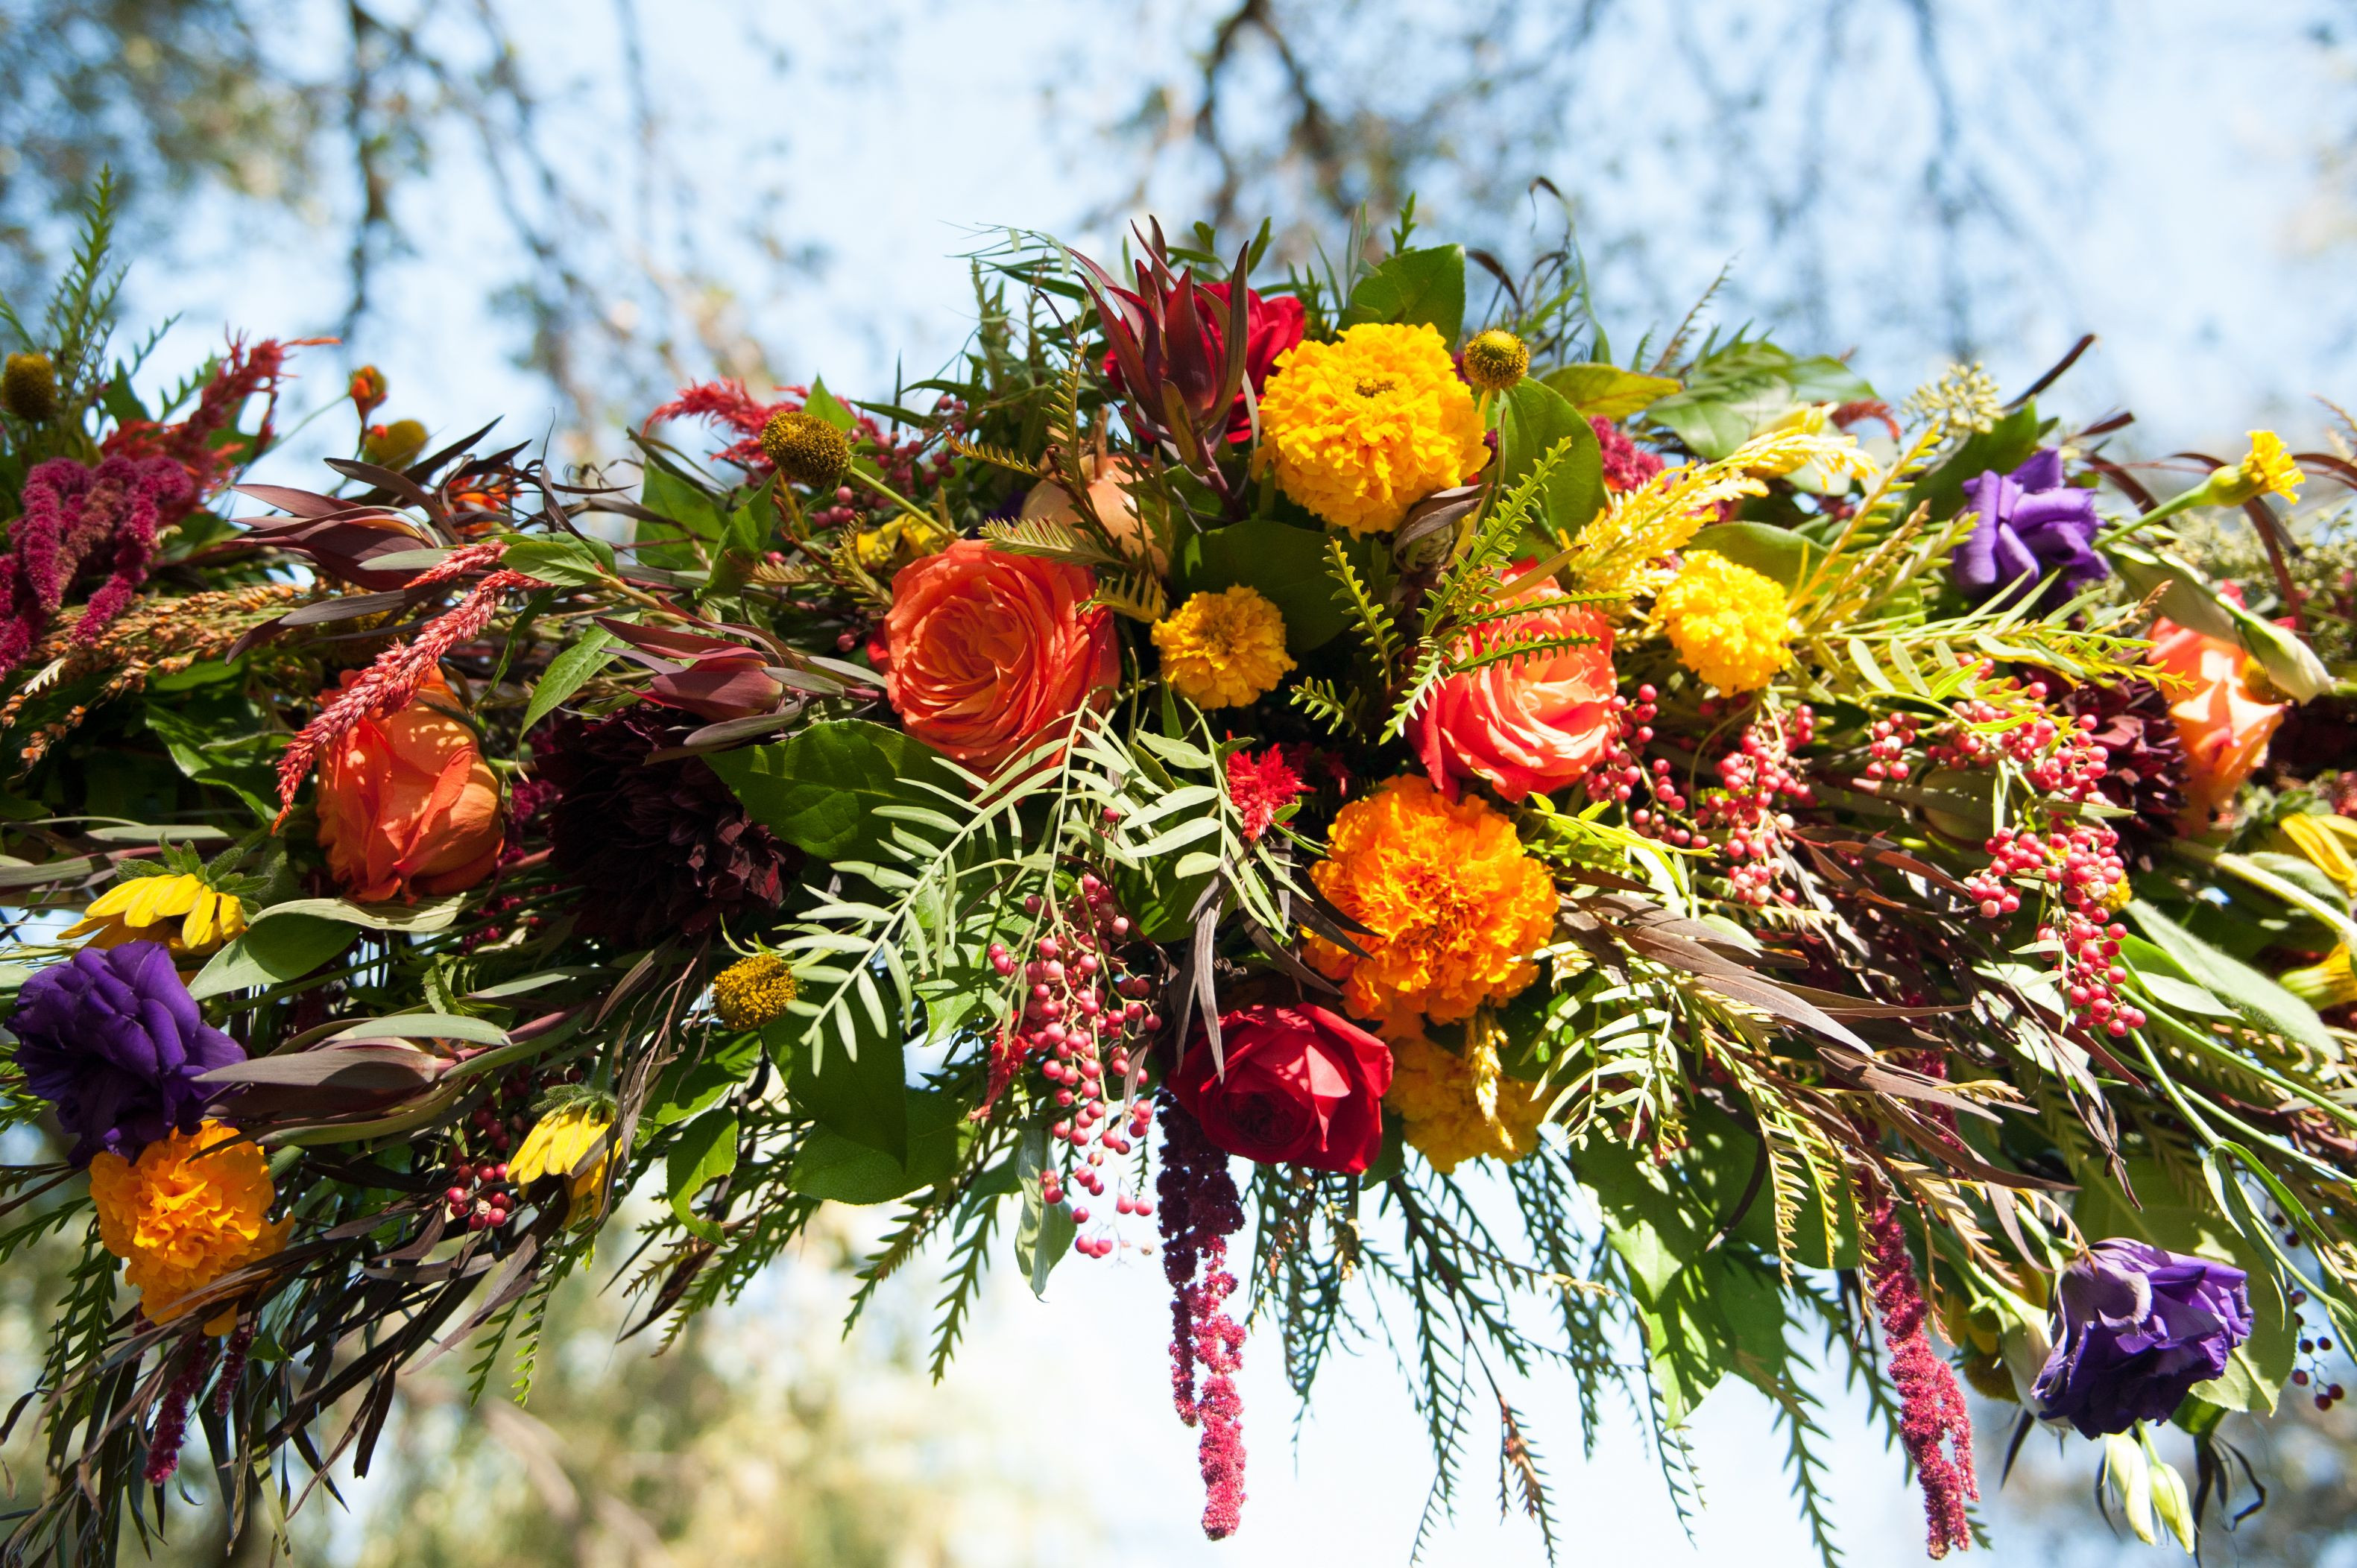 Flowers in this arch pieces include Marigolds roses lisianthus amaranthus pepper berries